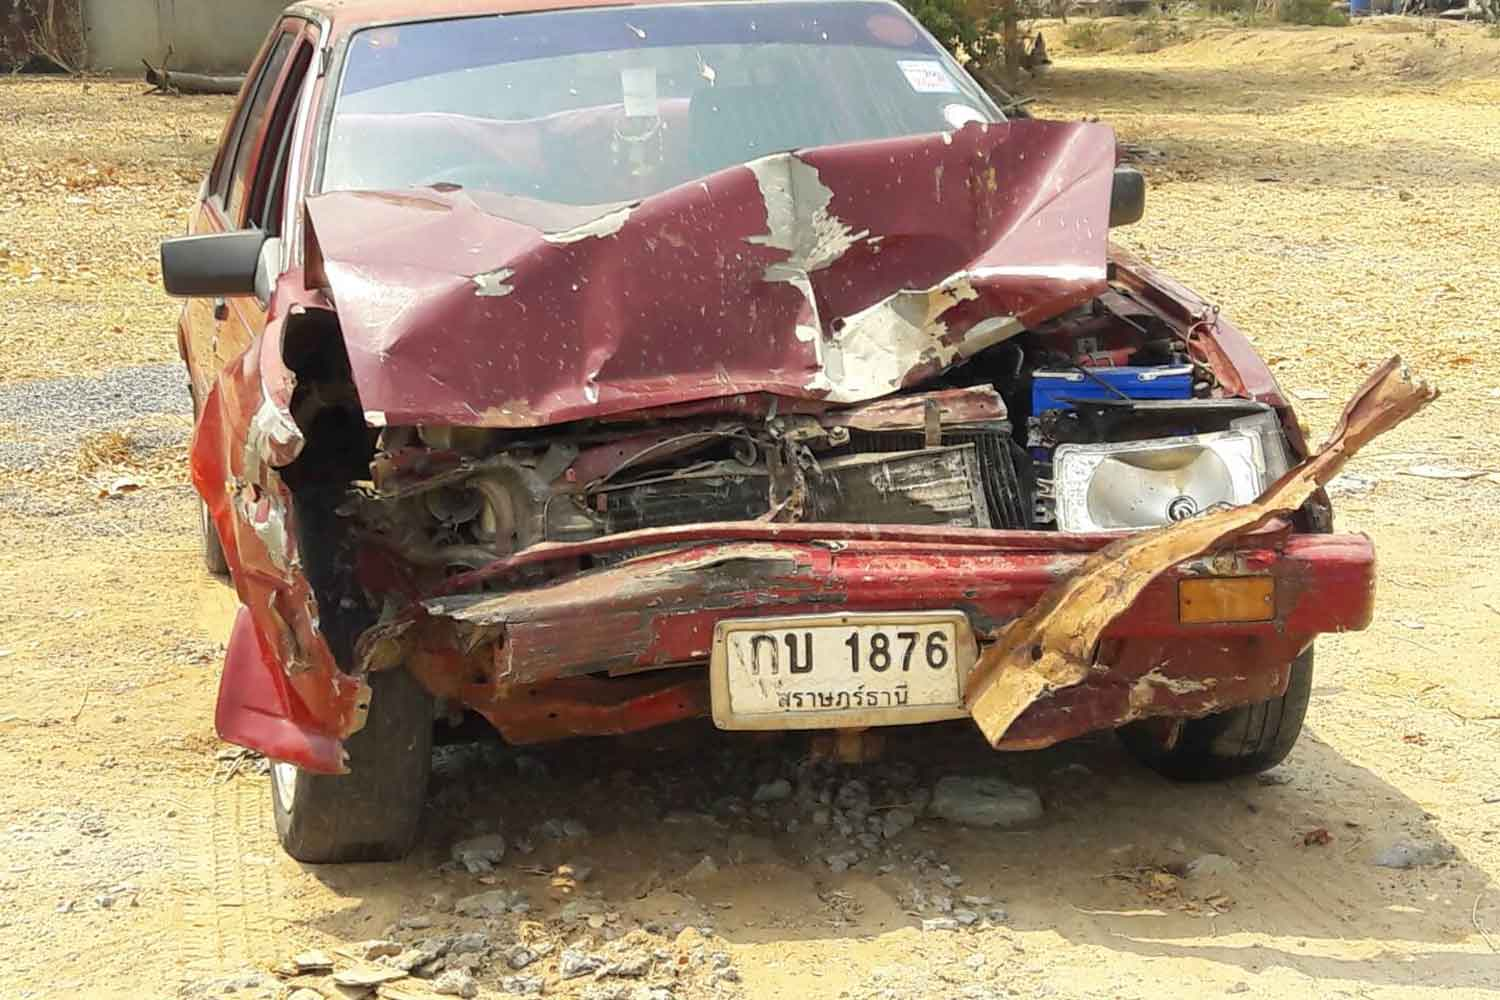 The Nissan Sunny, driven by a monk, after it rear-ended a pickup in Phimai on Sunday. A woman travelling on the back of the pickup was killed. (Photo by Prasit Tangprasert)